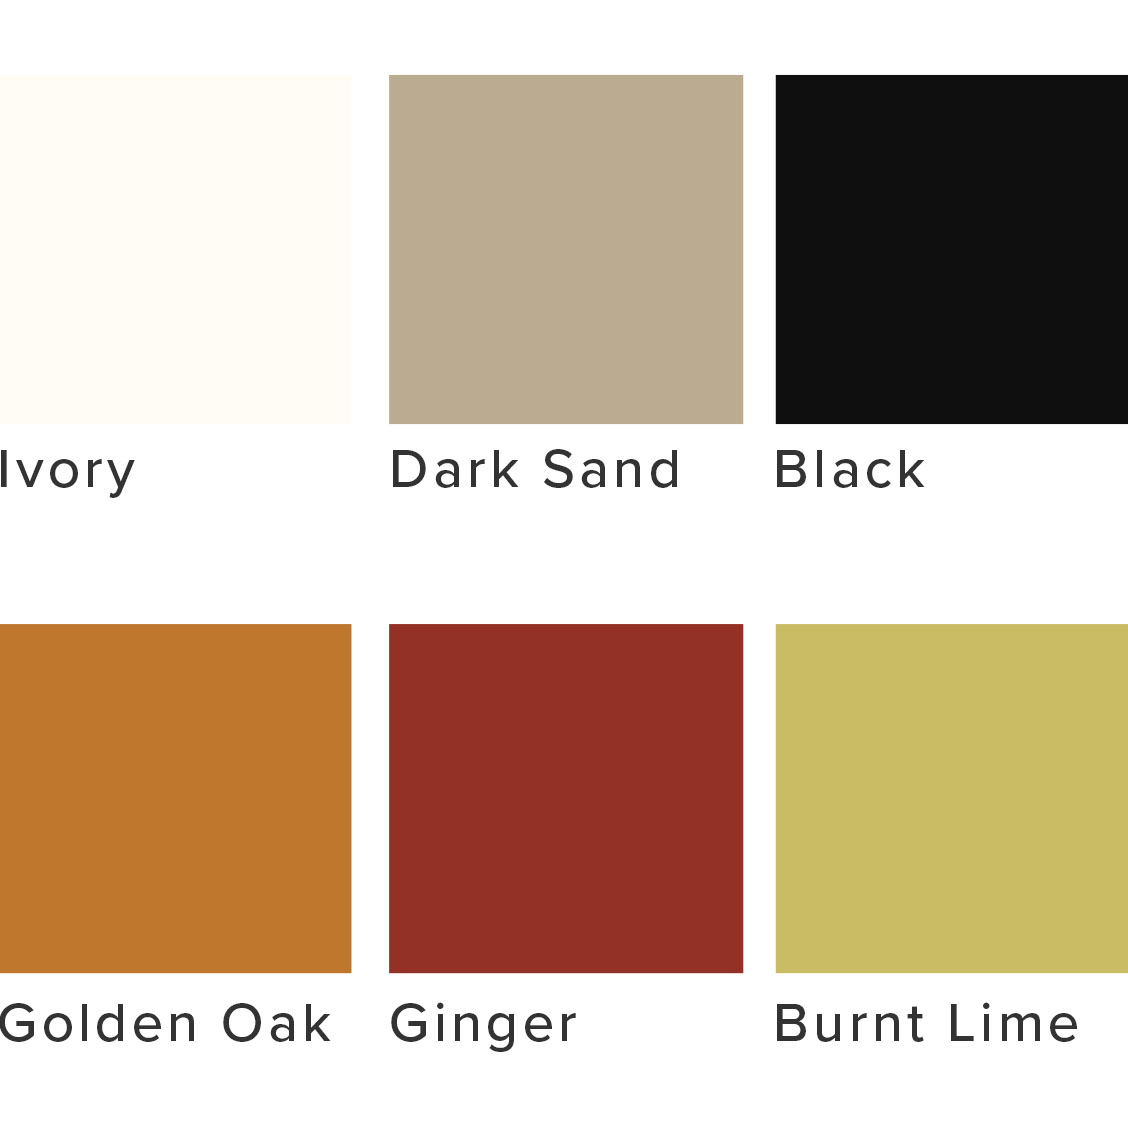 Colour palette including ivory, orange, rust red and black.